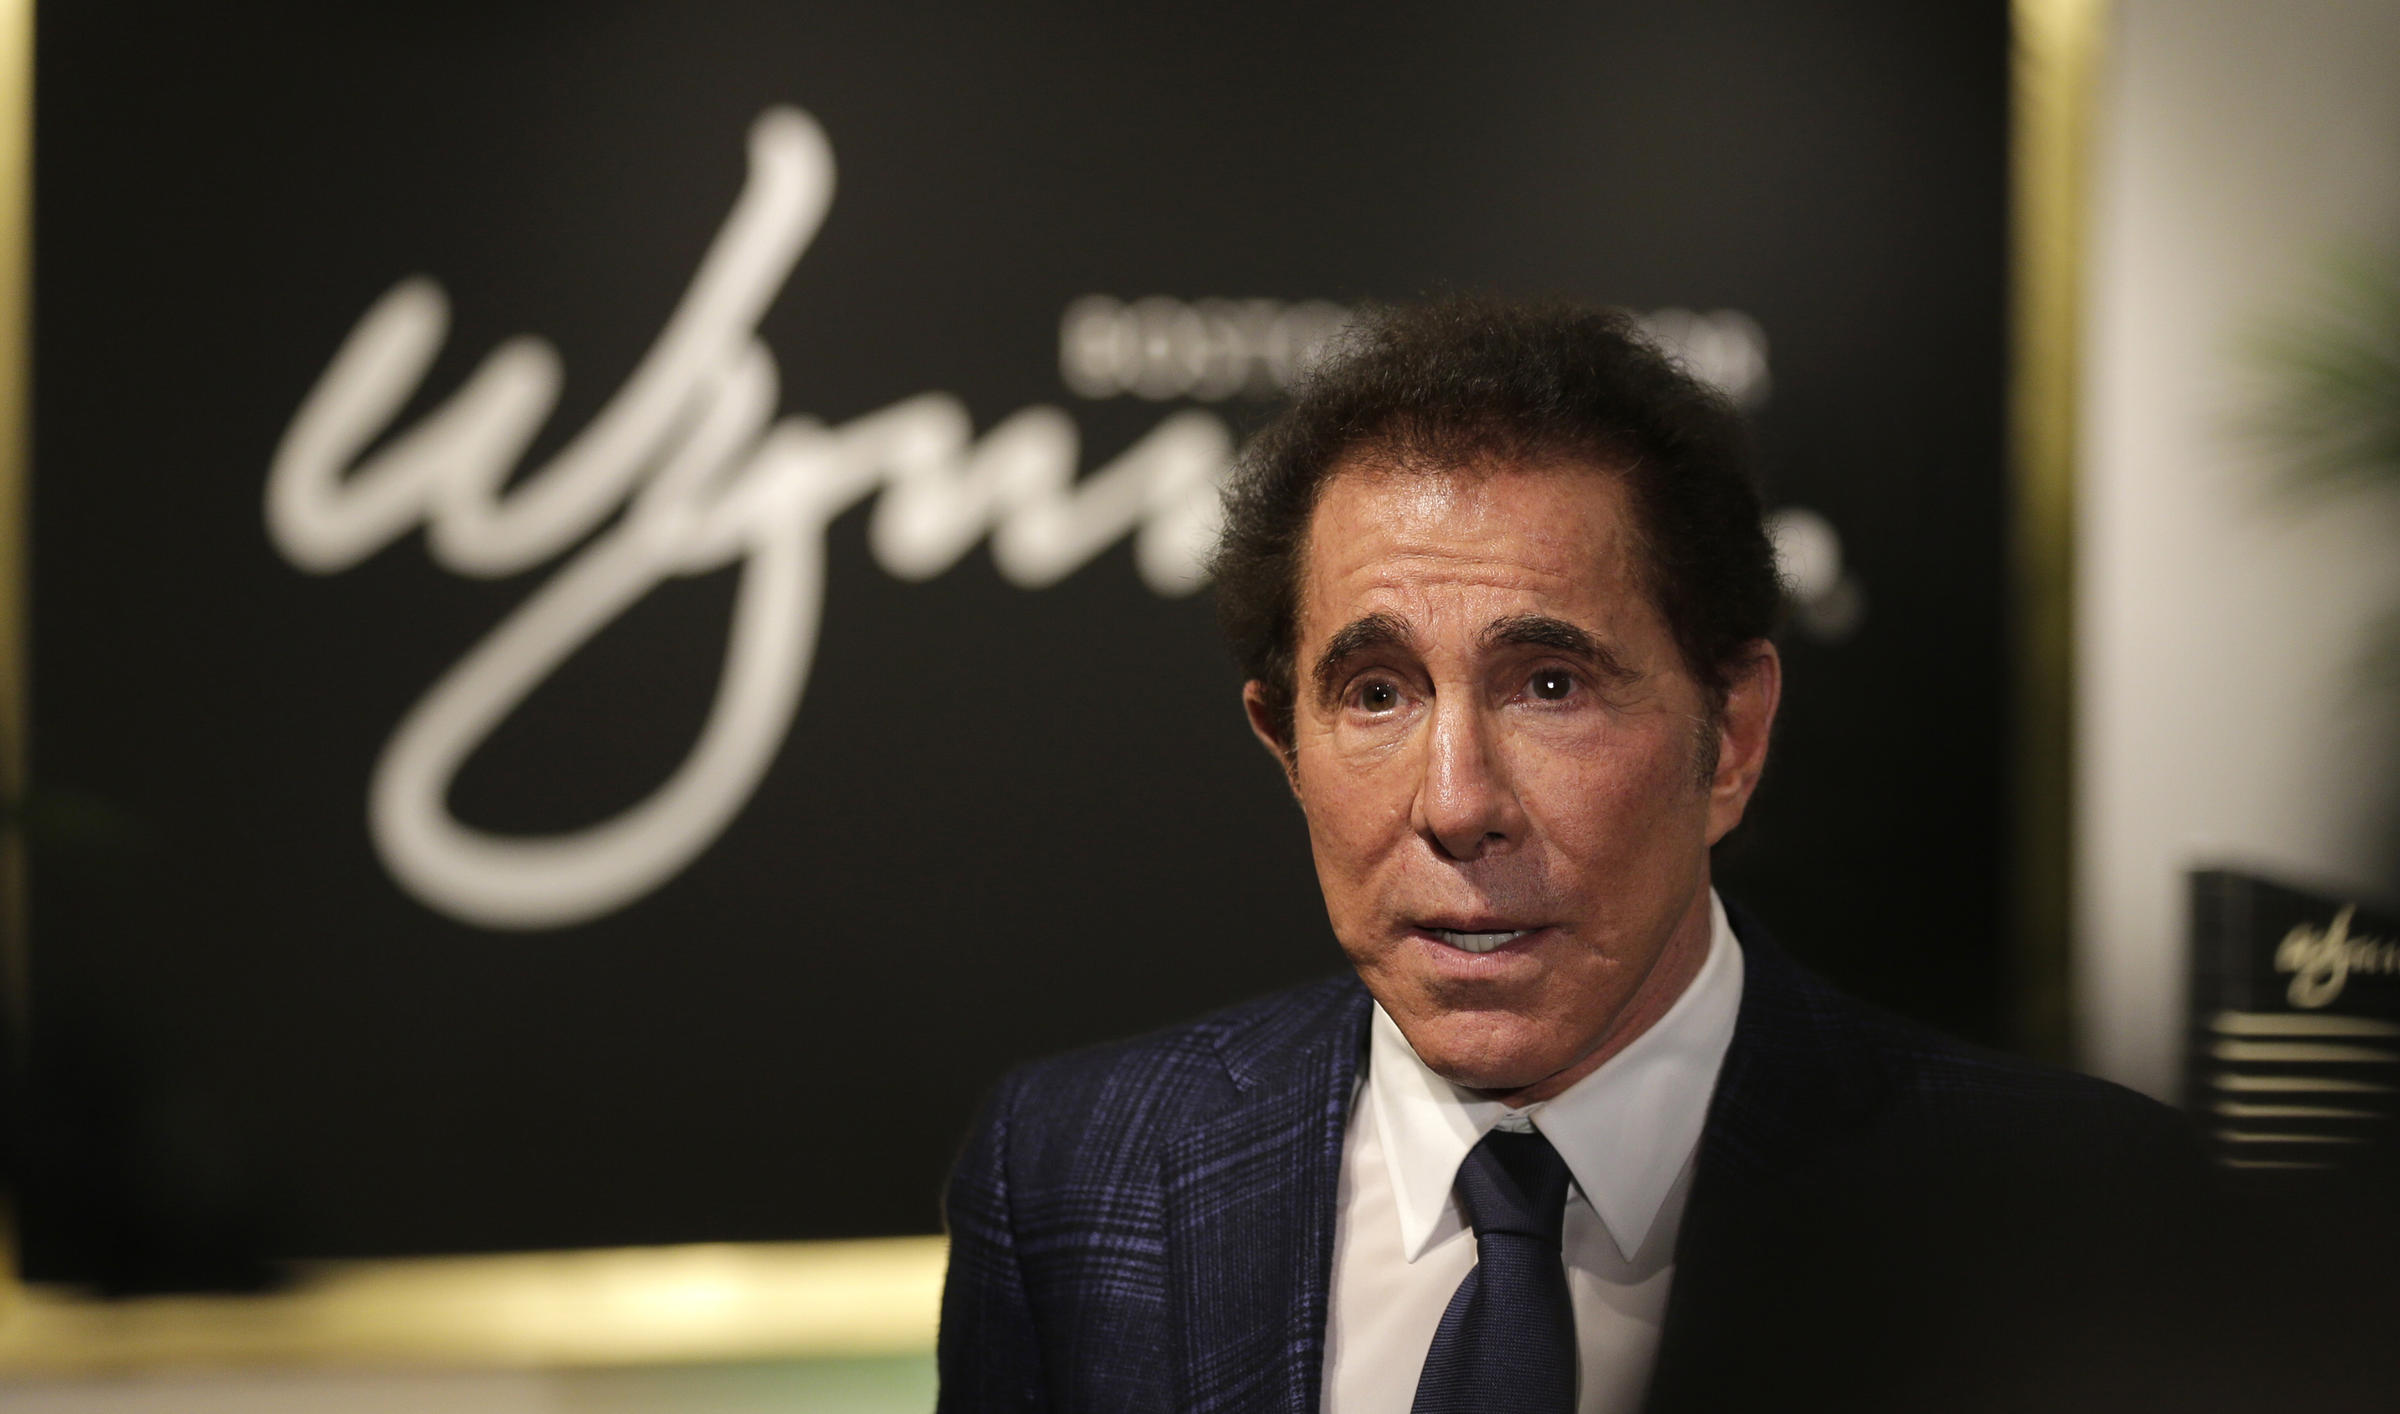 Democrats, Republicans trade accusations over 'dirty' contributions from Wynn, Clinton